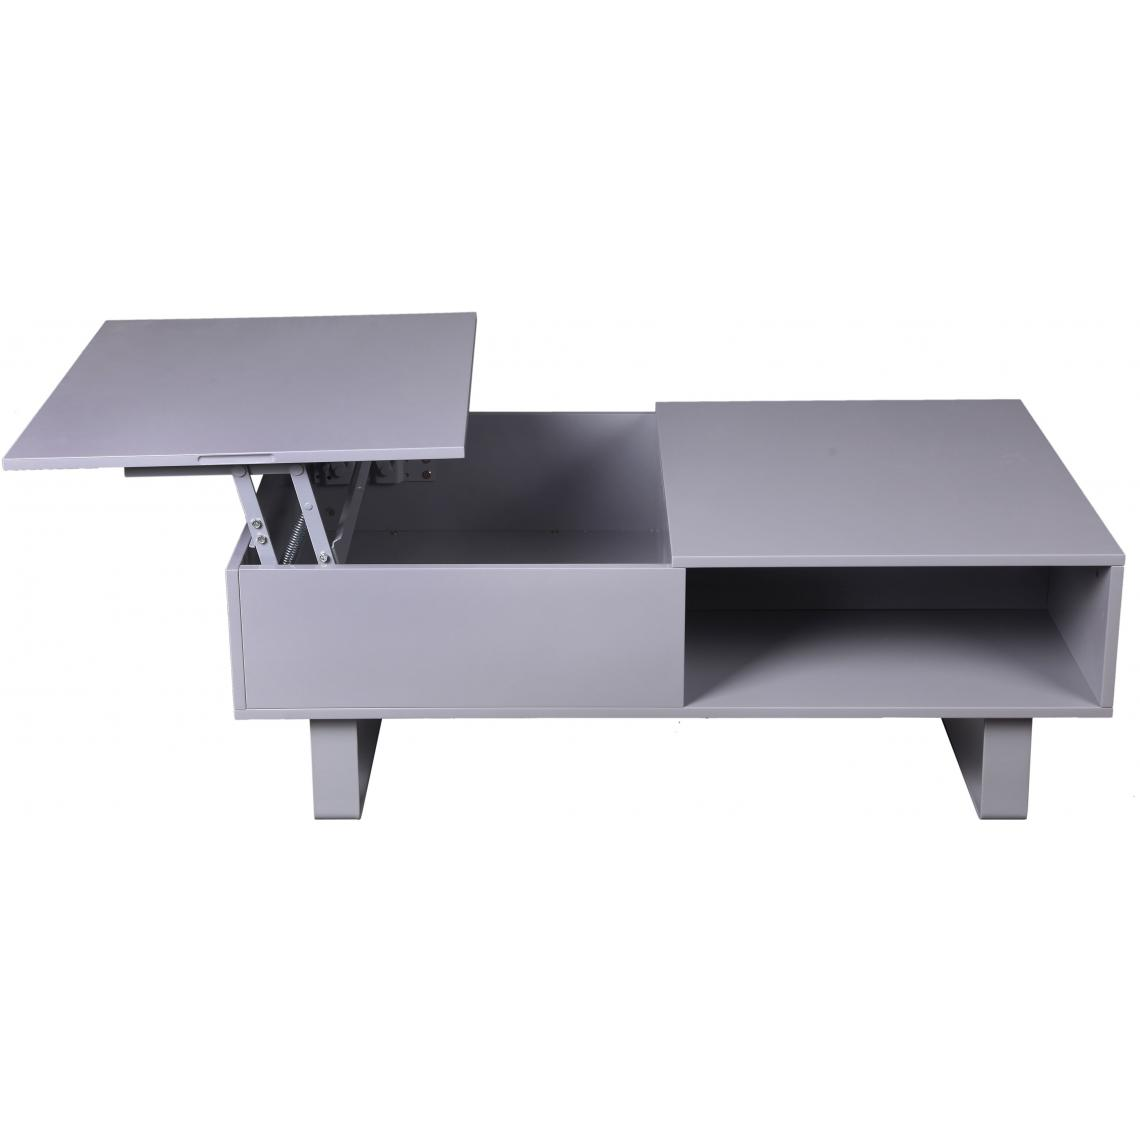 table basse avec plateau relevable gris nertino